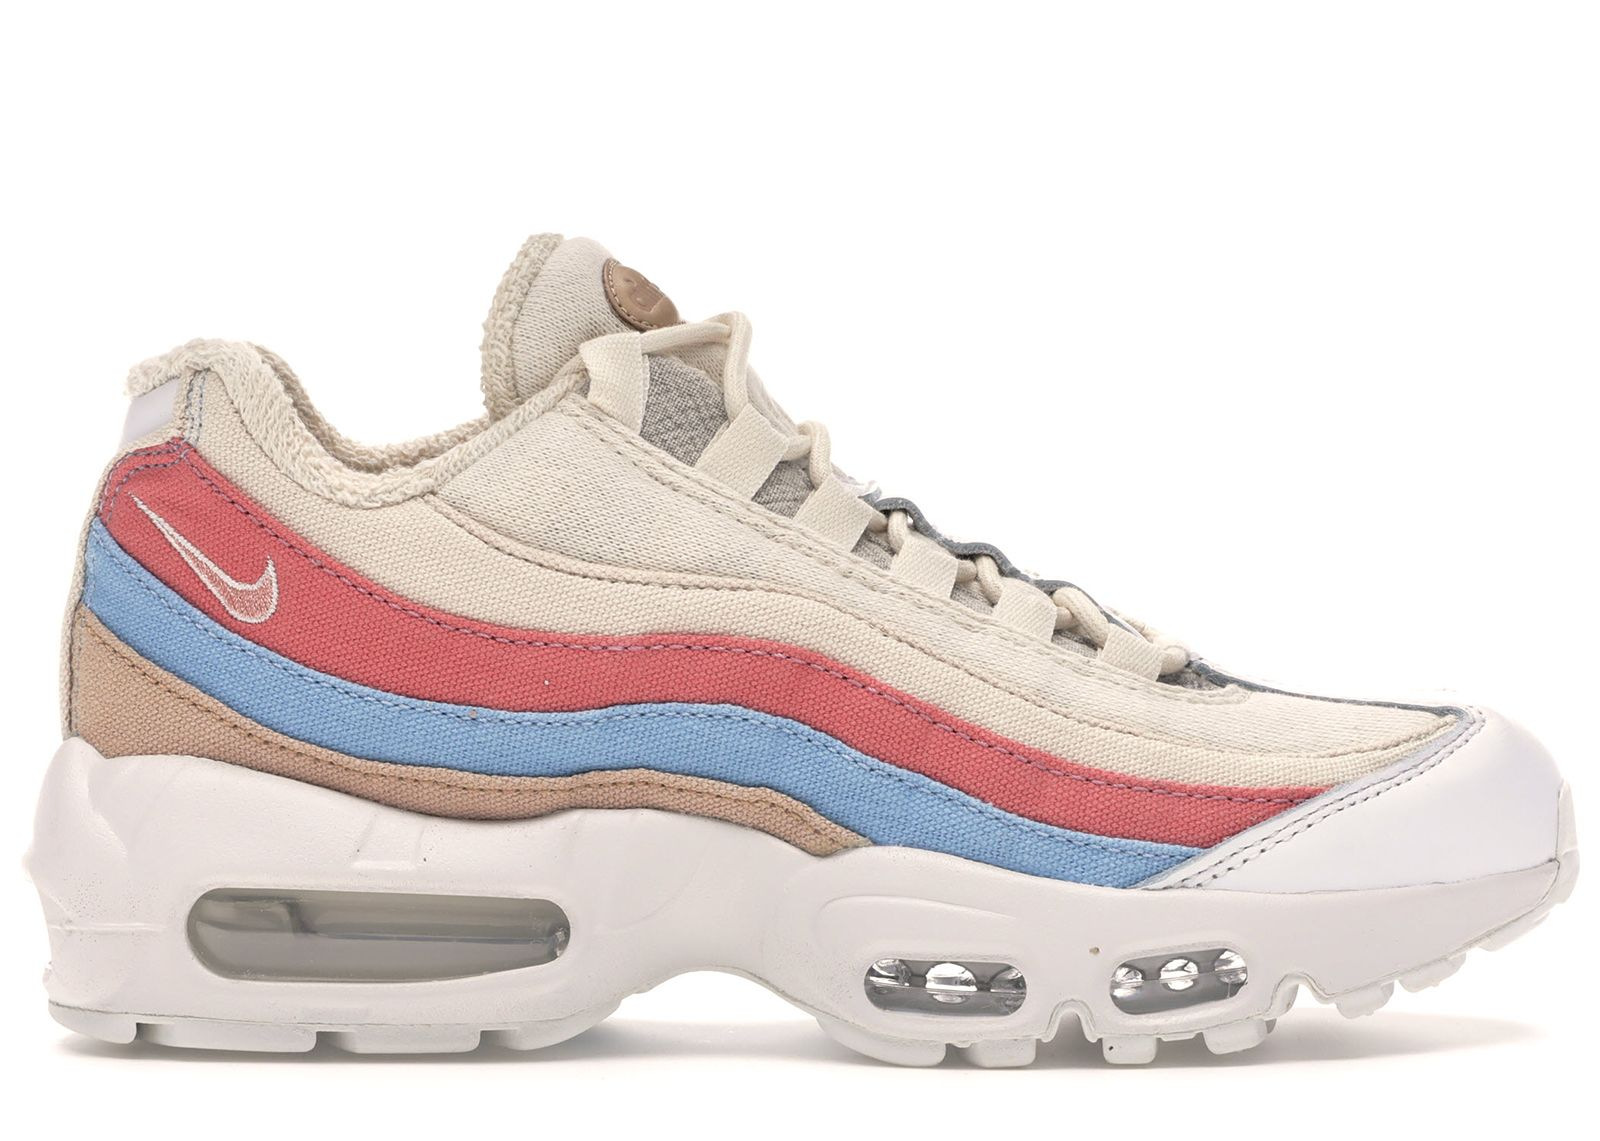 Nike Air Max 95 Plant Color Collection Multi color (w) In